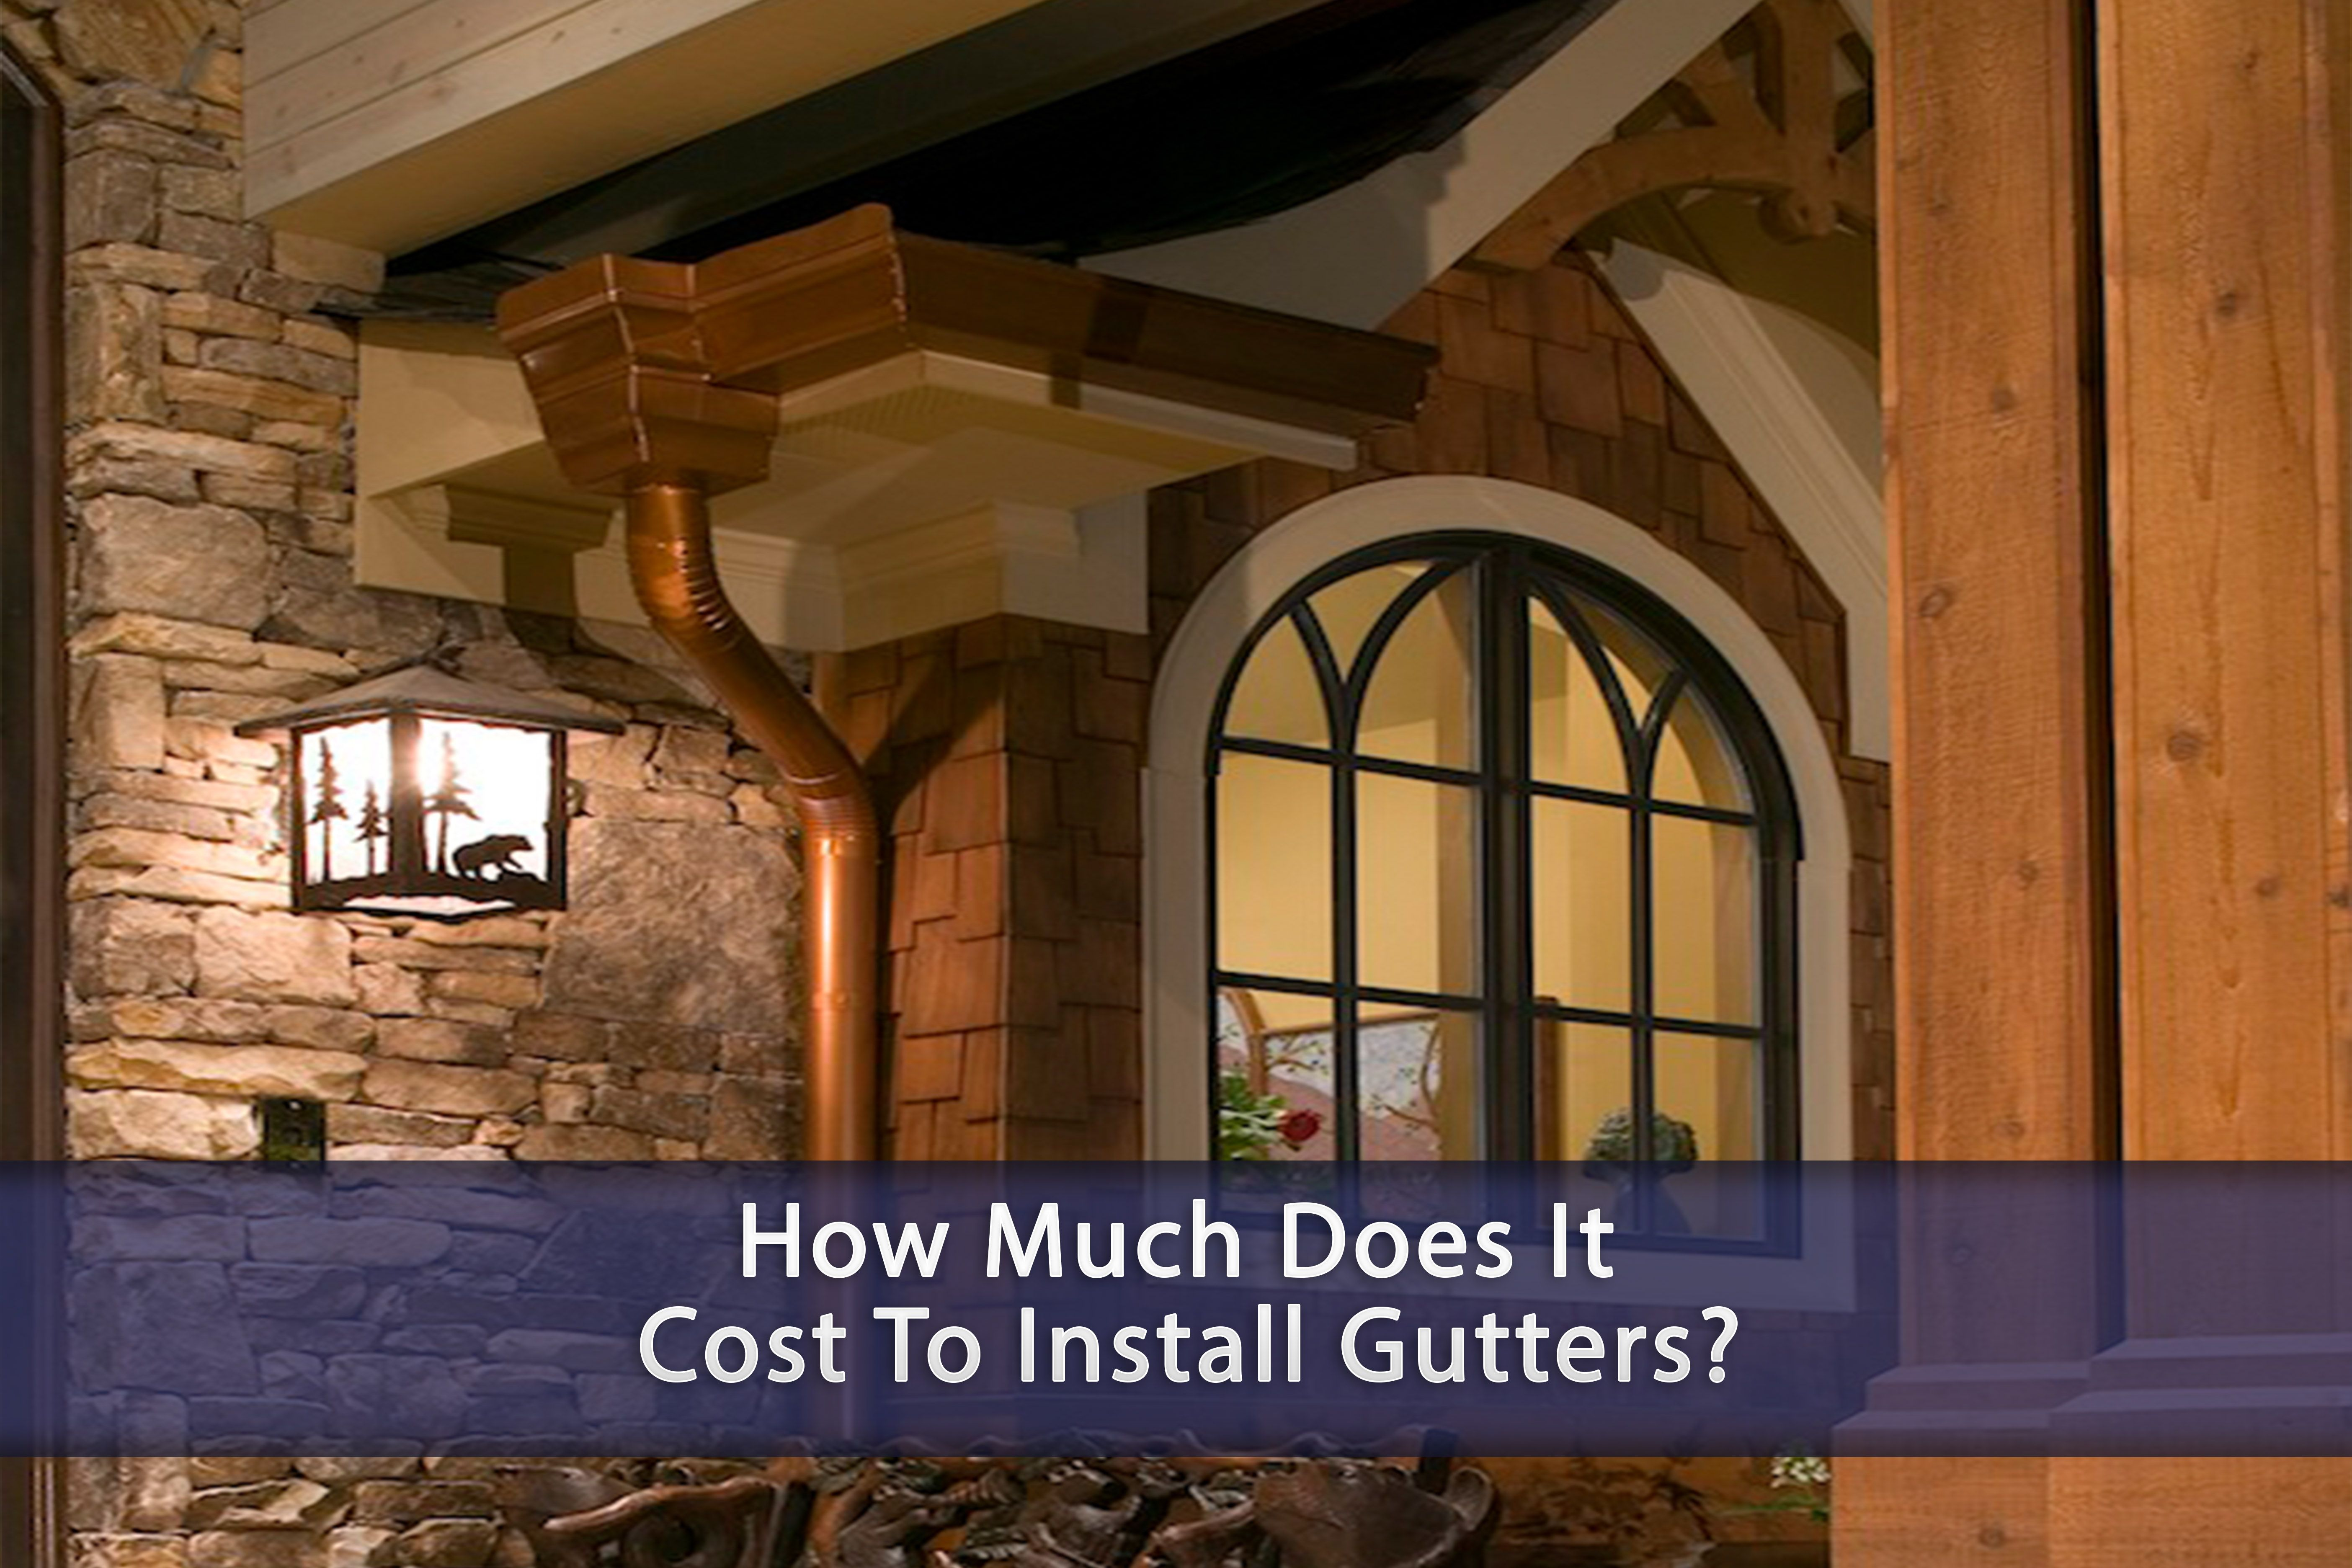 How Much Does It Cost To Install Gutters Gutters Installation How To Install Gutters